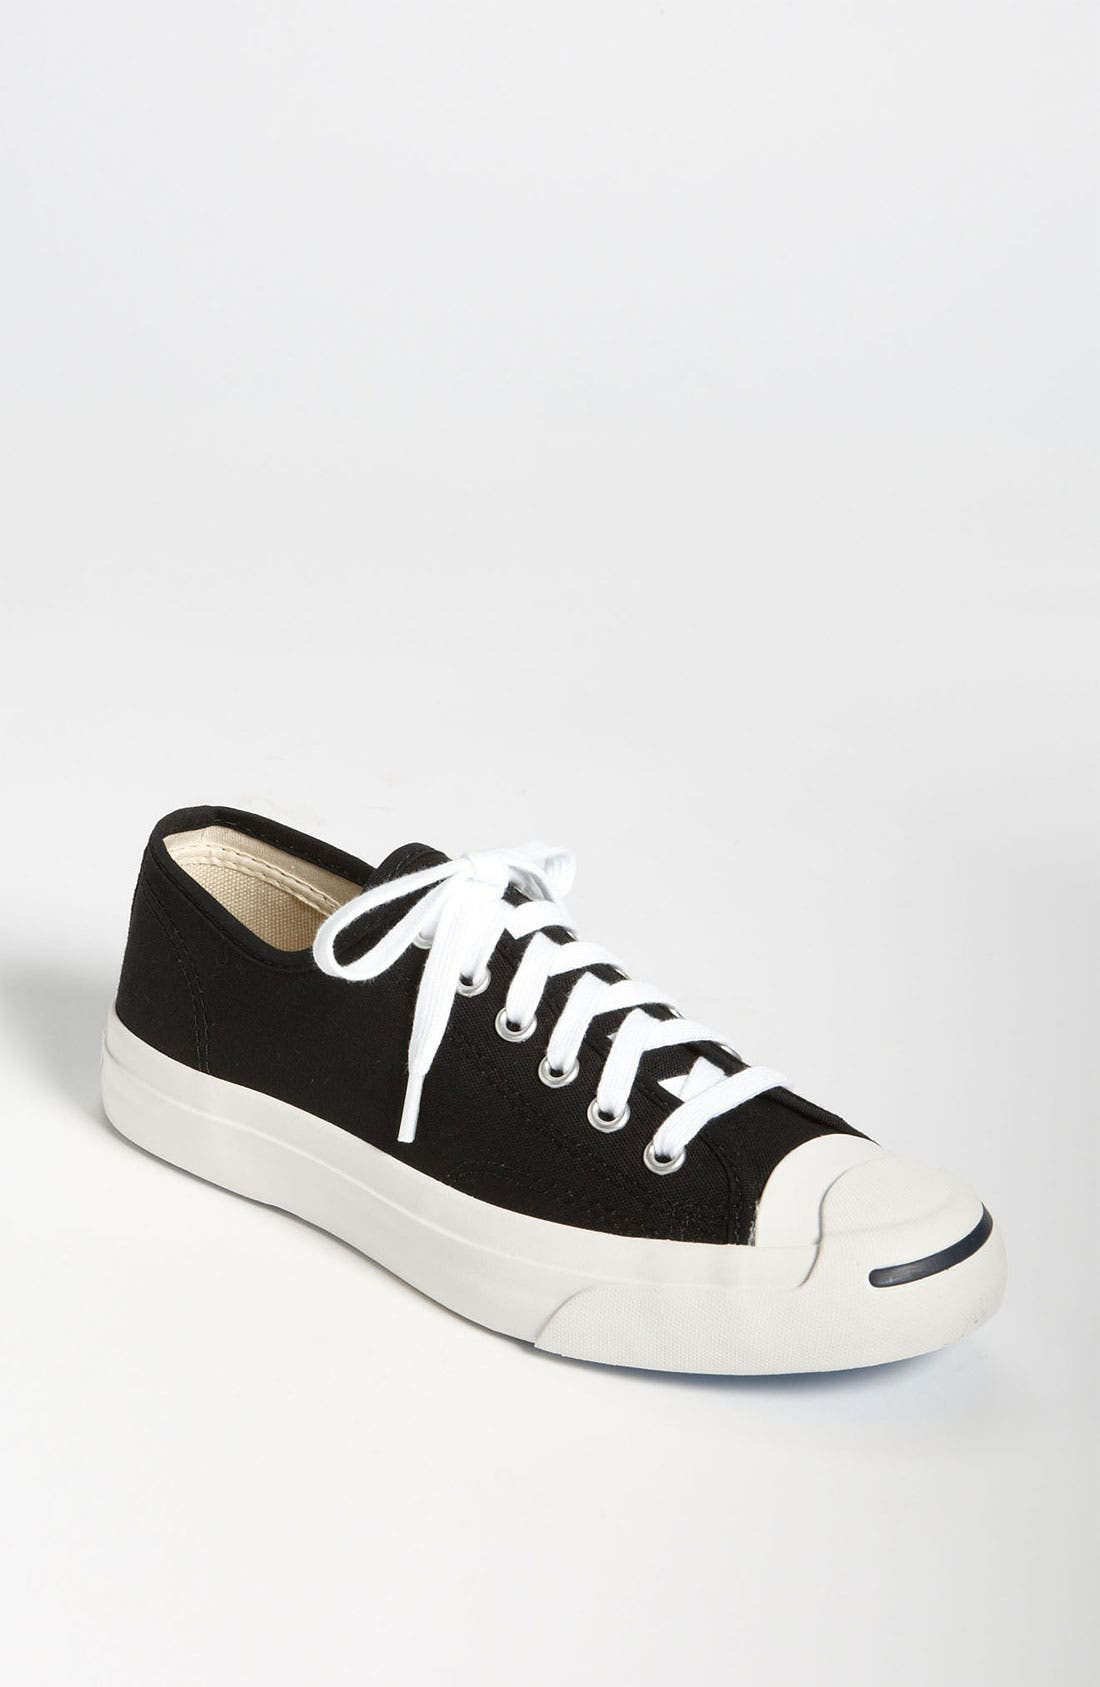 'Jack Purcell' Sneaker,                             Main thumbnail 2, color,